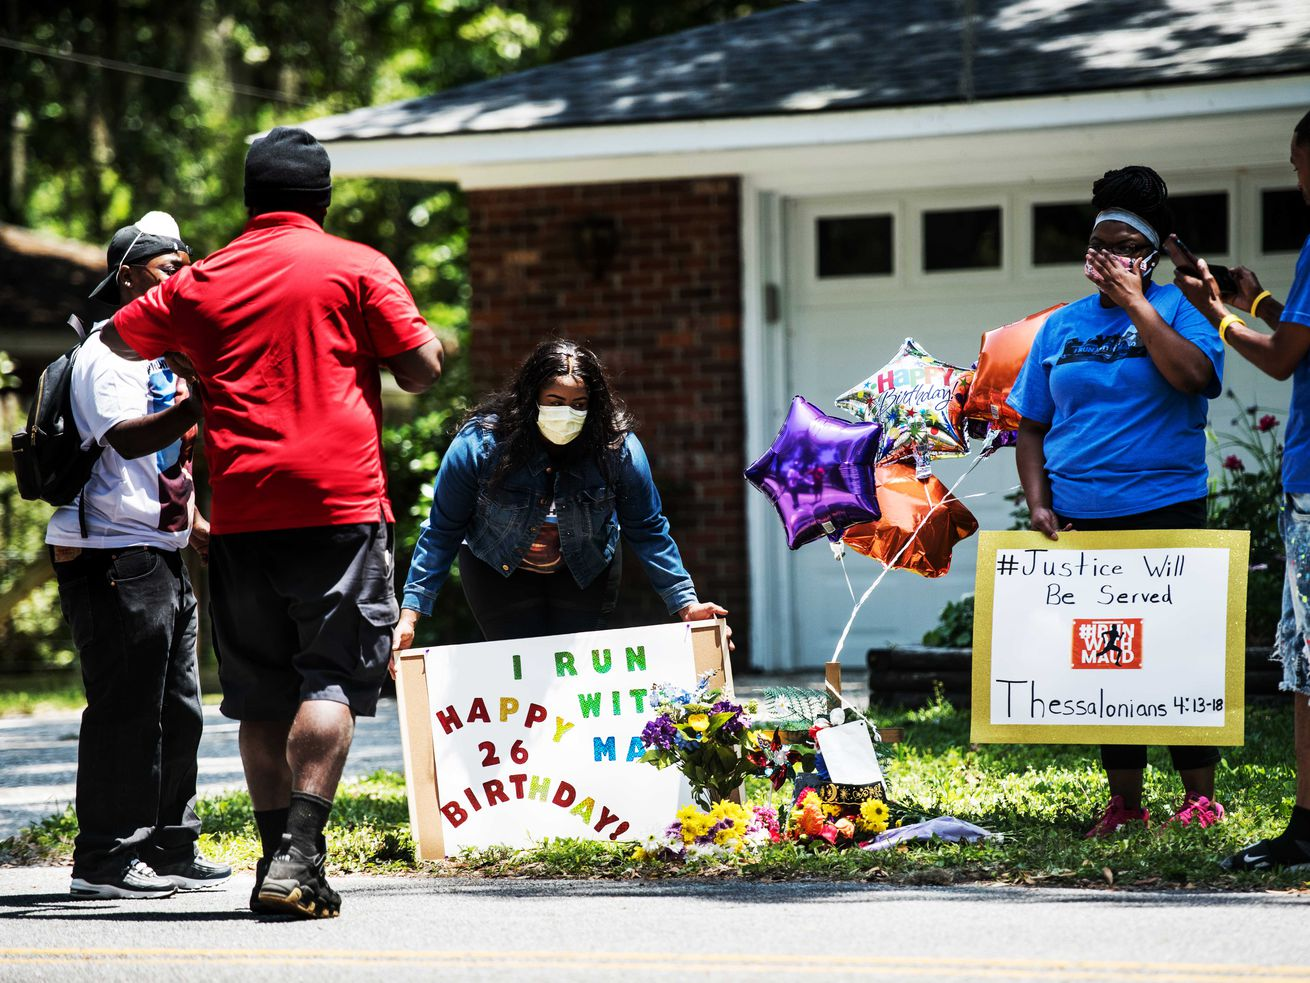 Gathered on the frontlawn, standingon the grasswithballoons and flowers, a group of black demonstrators hold signsatamemorial for Ahmaud Arbery near where he was shot and killed in Brunswick, Georgia, on May 8.